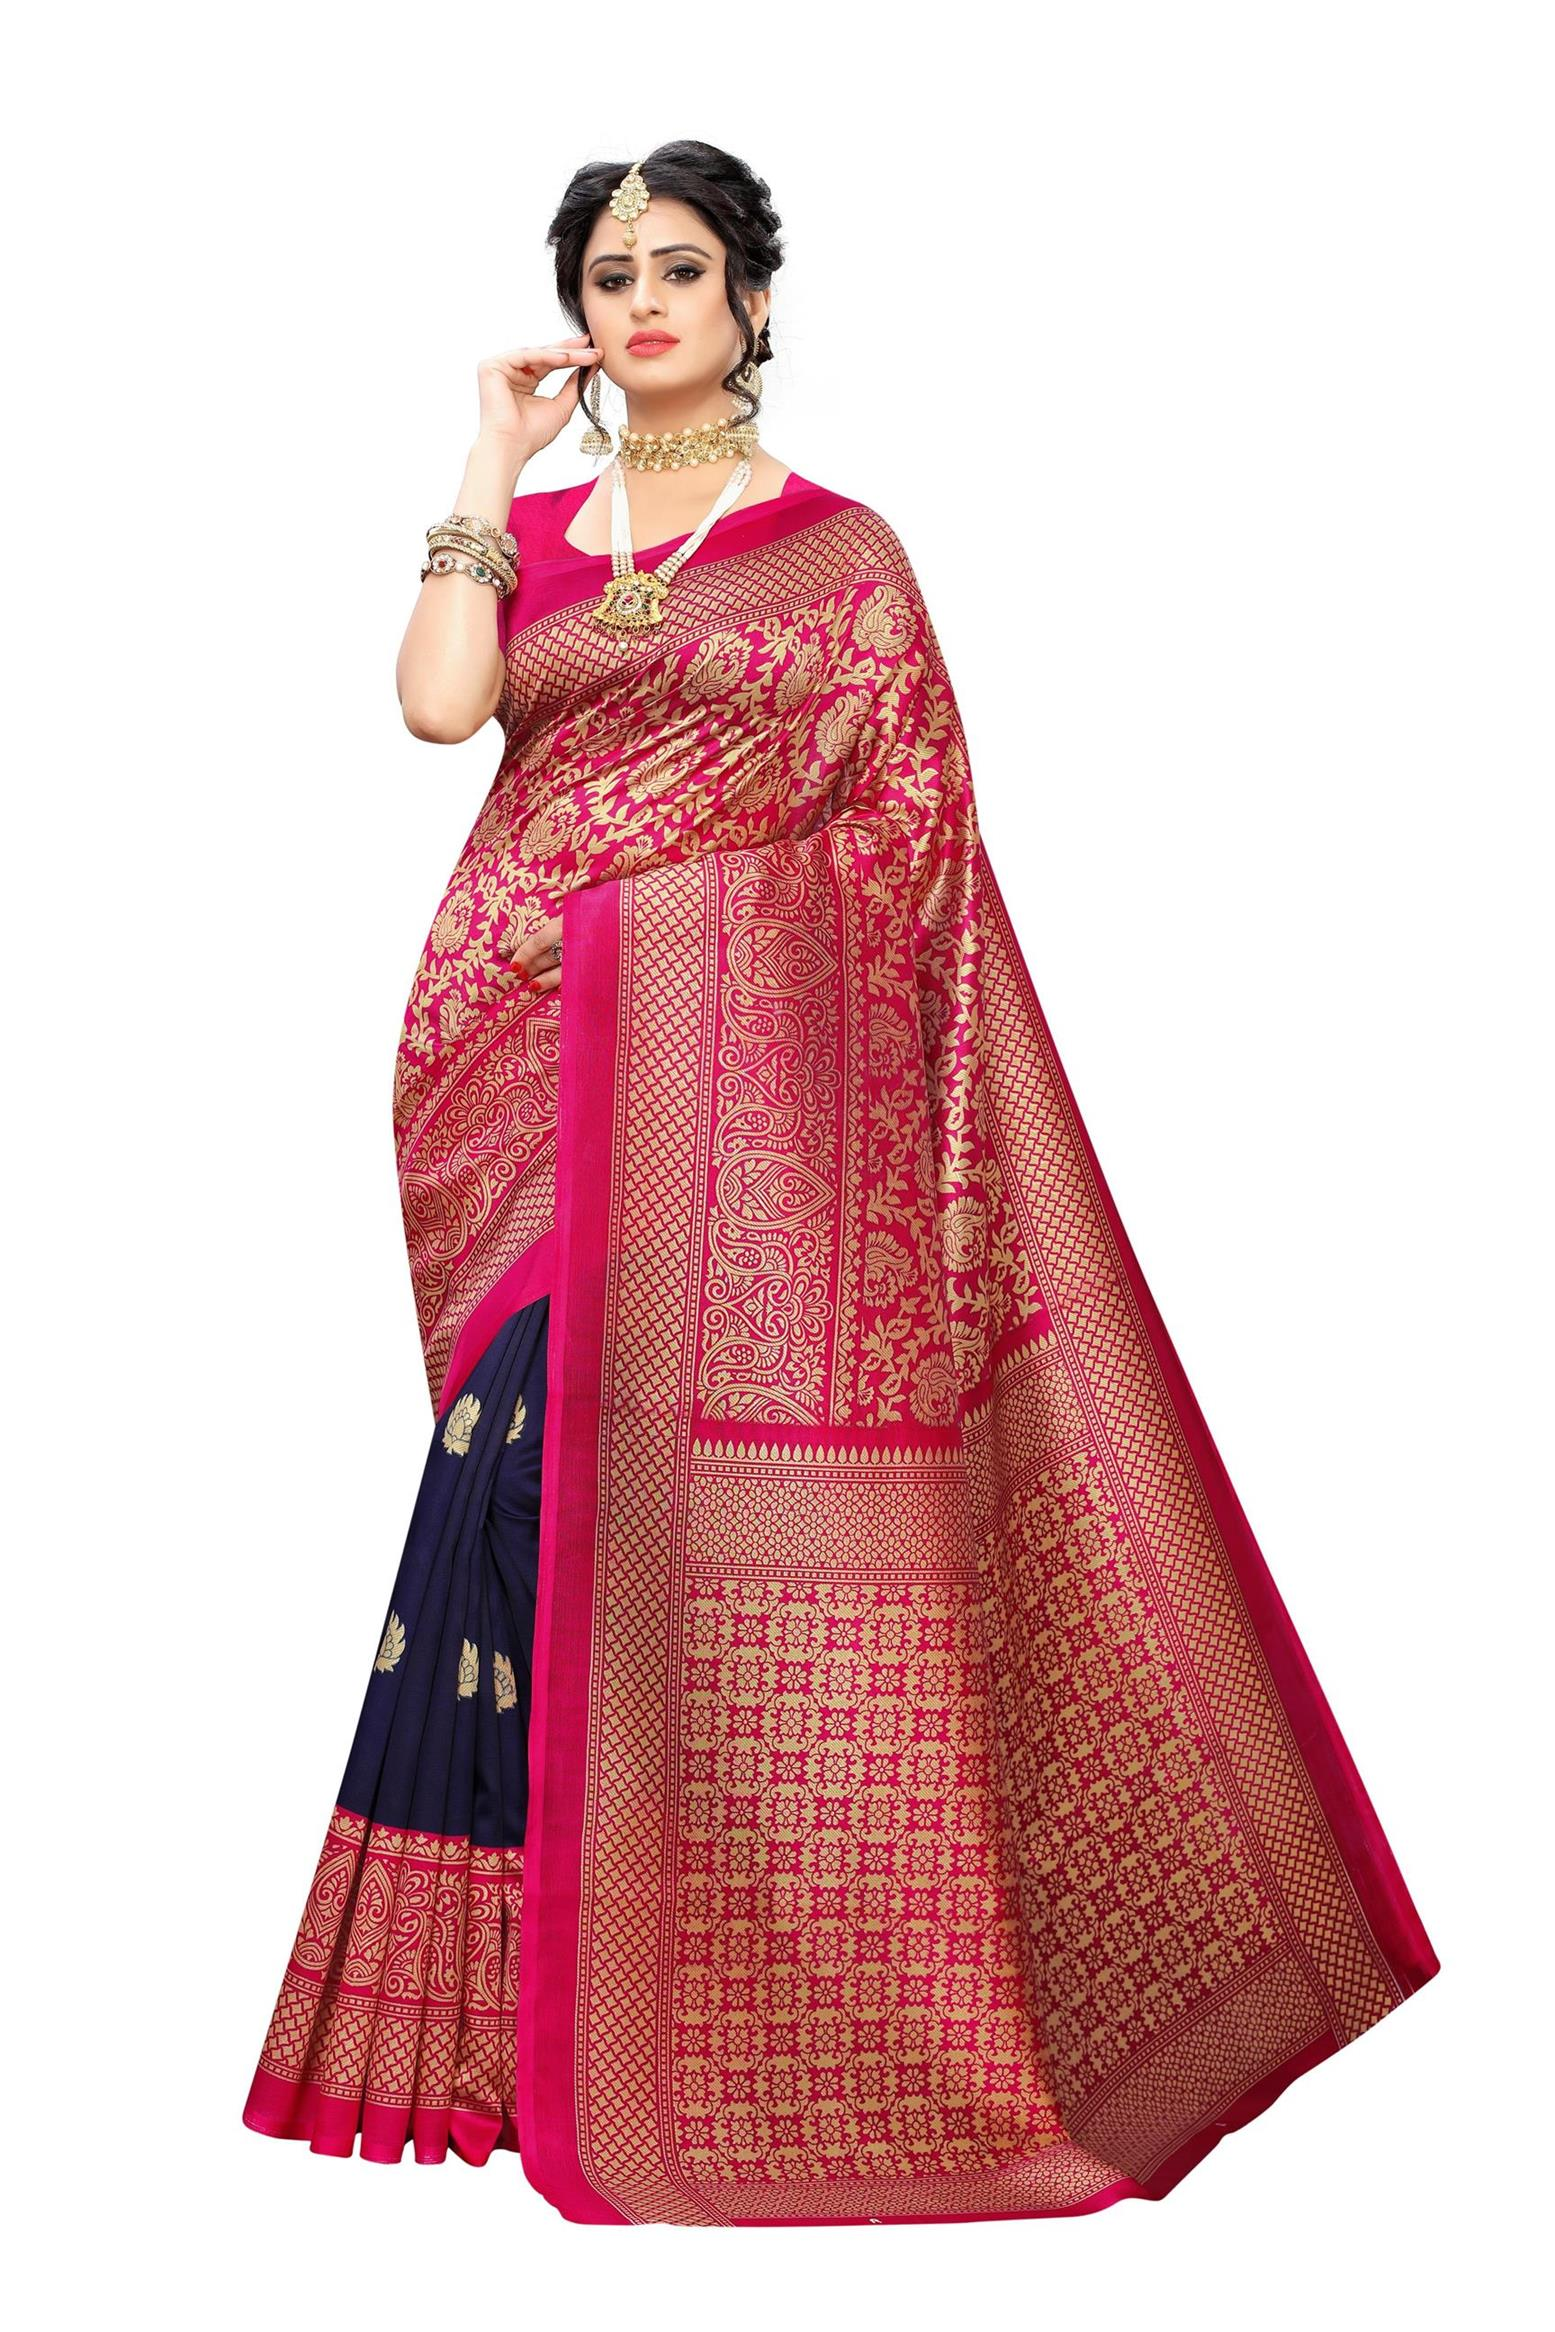 https://assetscdn1.paytm.com/images/catalog/product/A/AP/APPINDIAN-BEAUTANNI512919BB4F12B/0..jpg